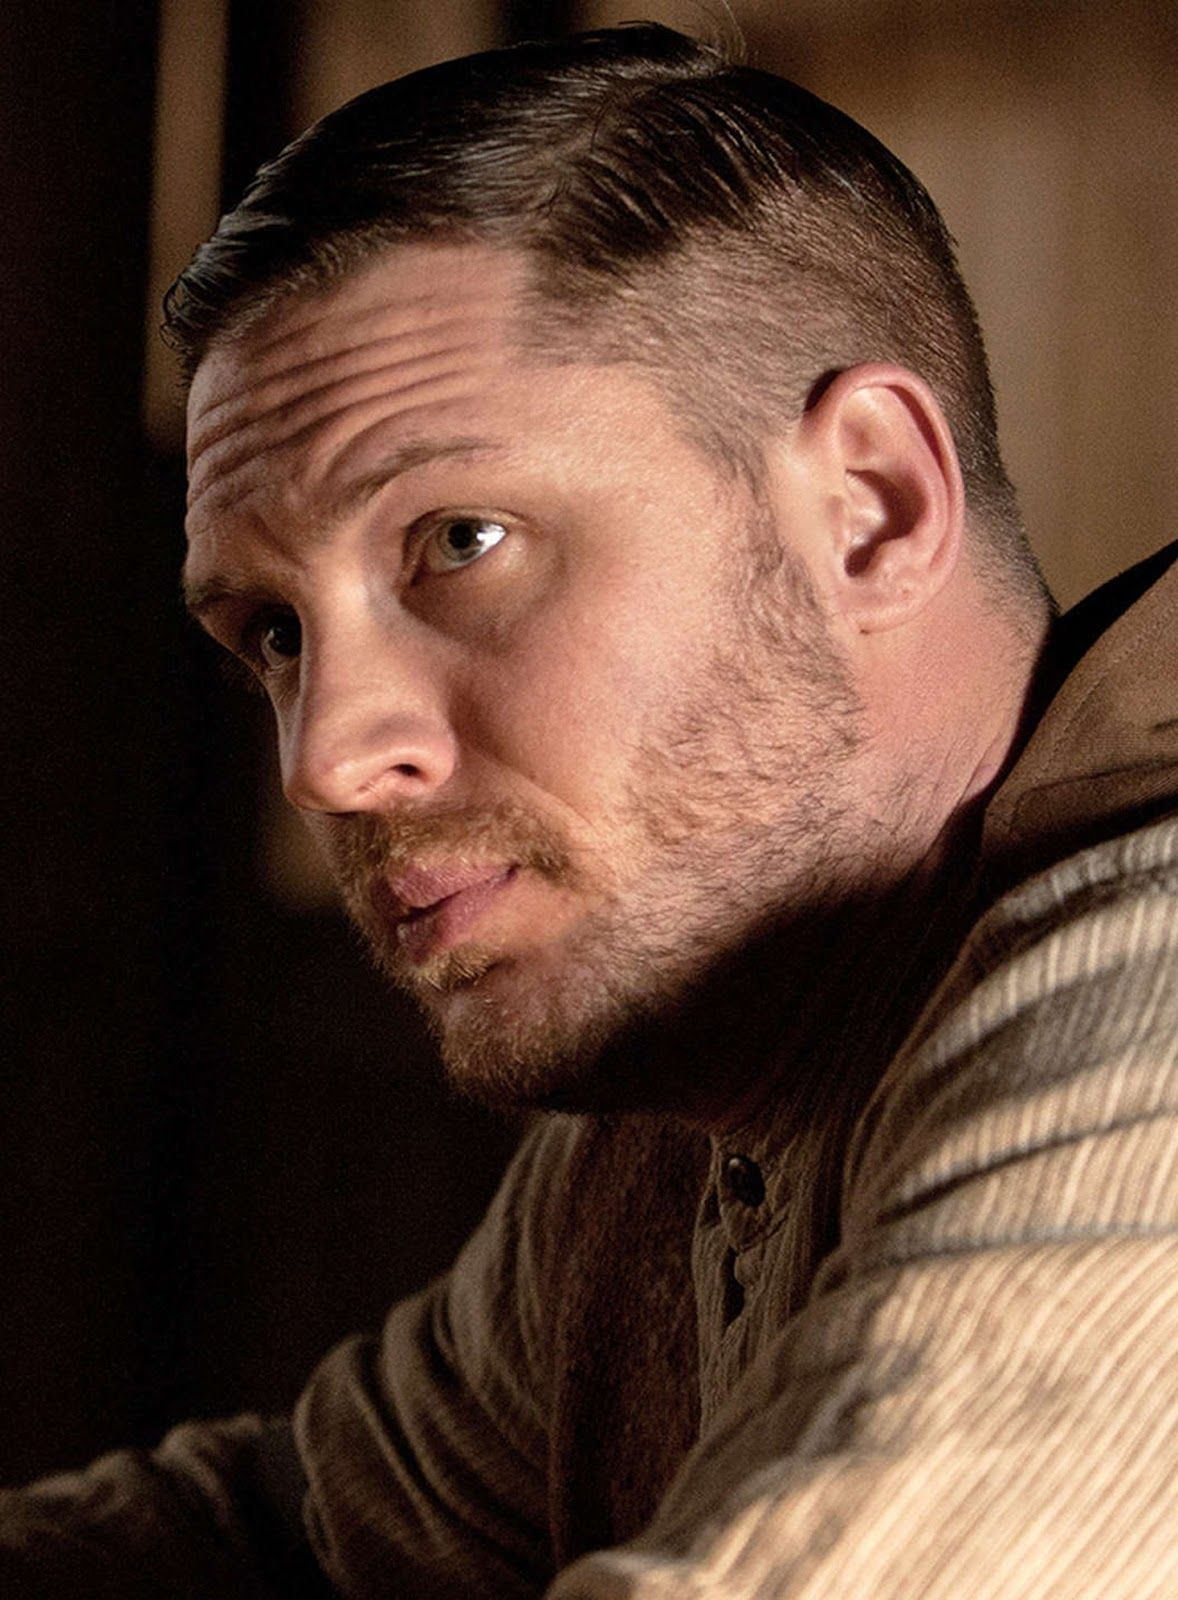 Tom Hardy Lawless Old Fashioned Gentlemens Cut Close Sides